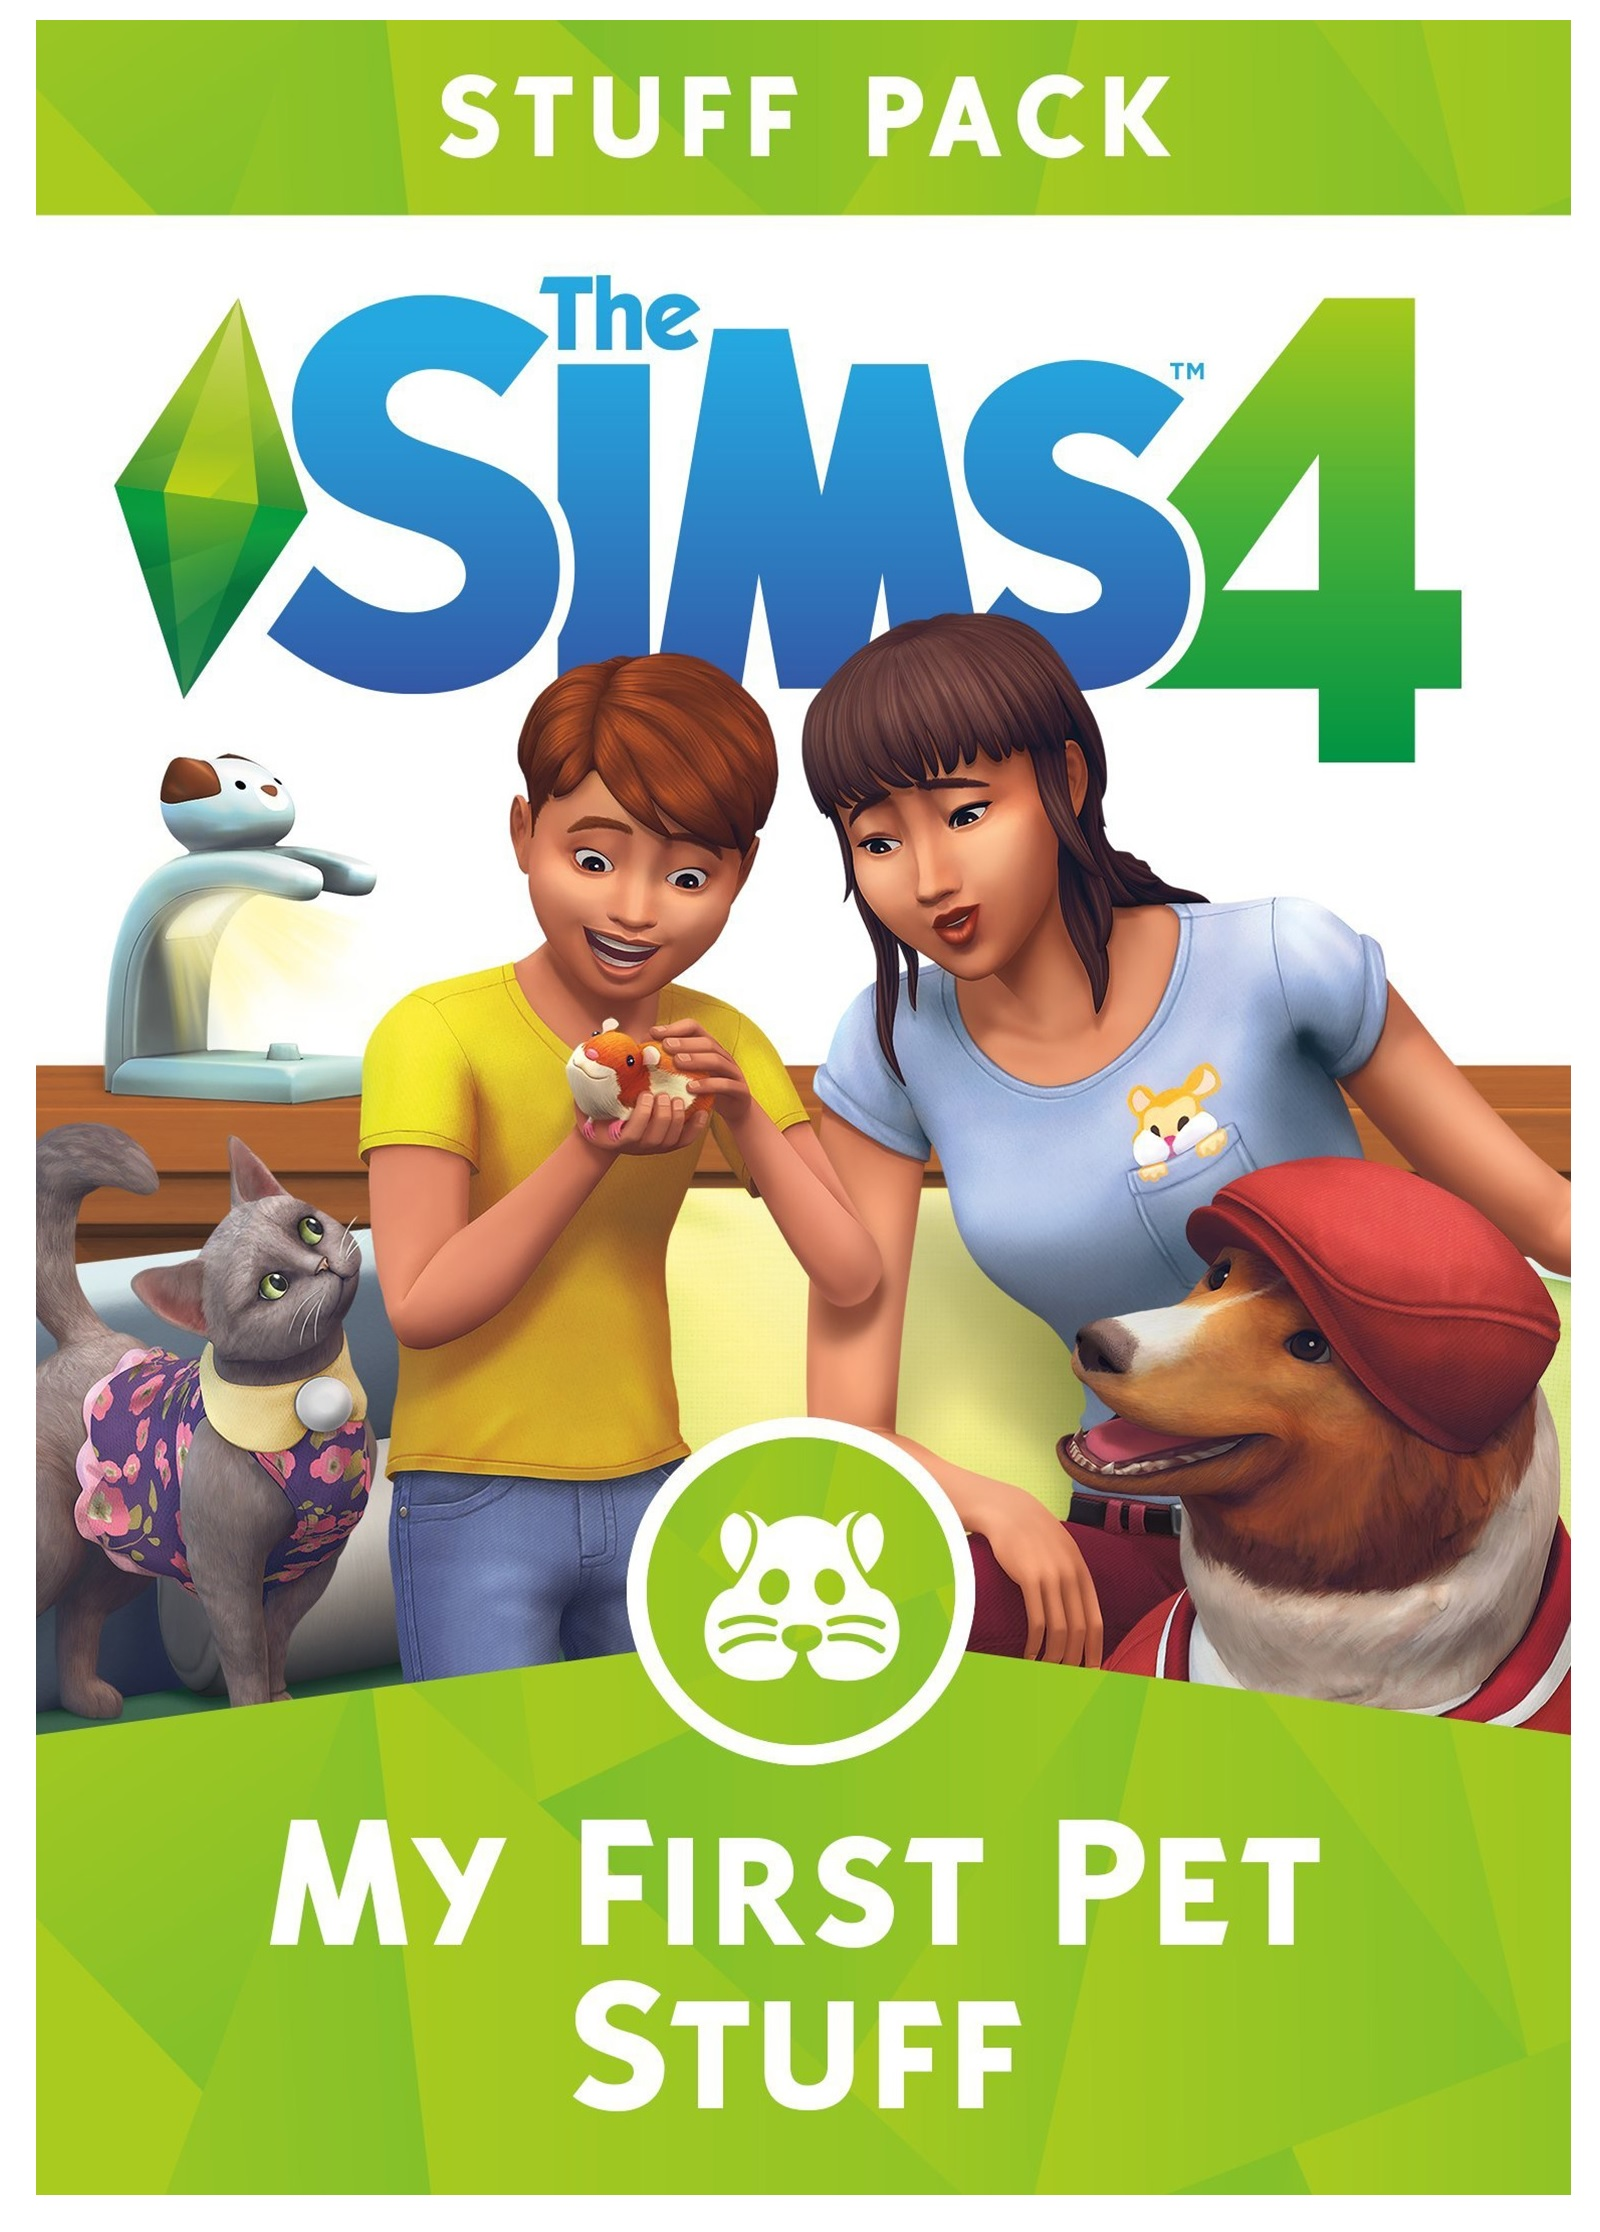 Electronic Arts The Sims 4 My First Pet Stuff Pack PC Game